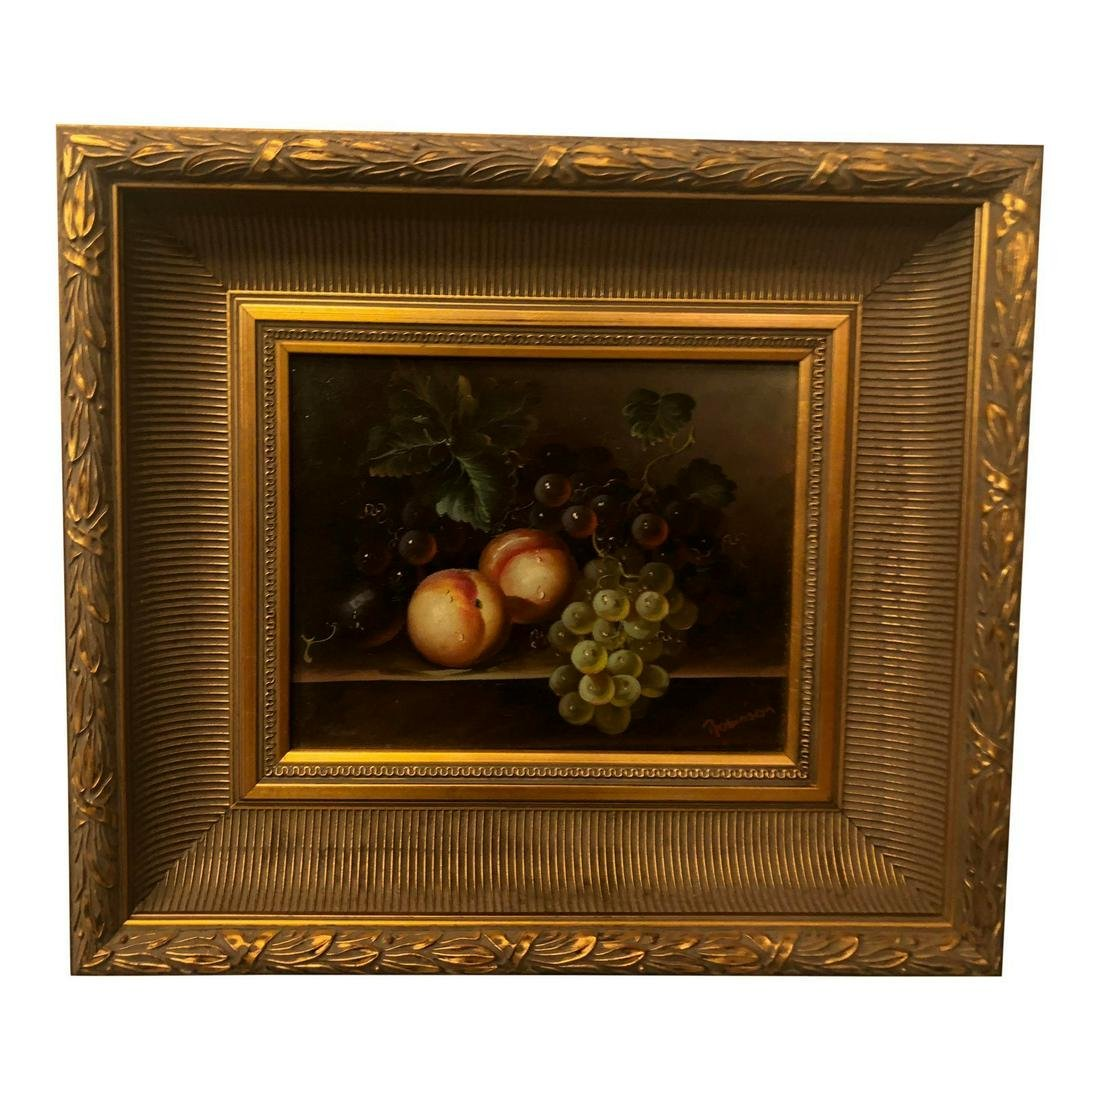 1980s Fruit on Table Still Life Oil on Canvas Painting